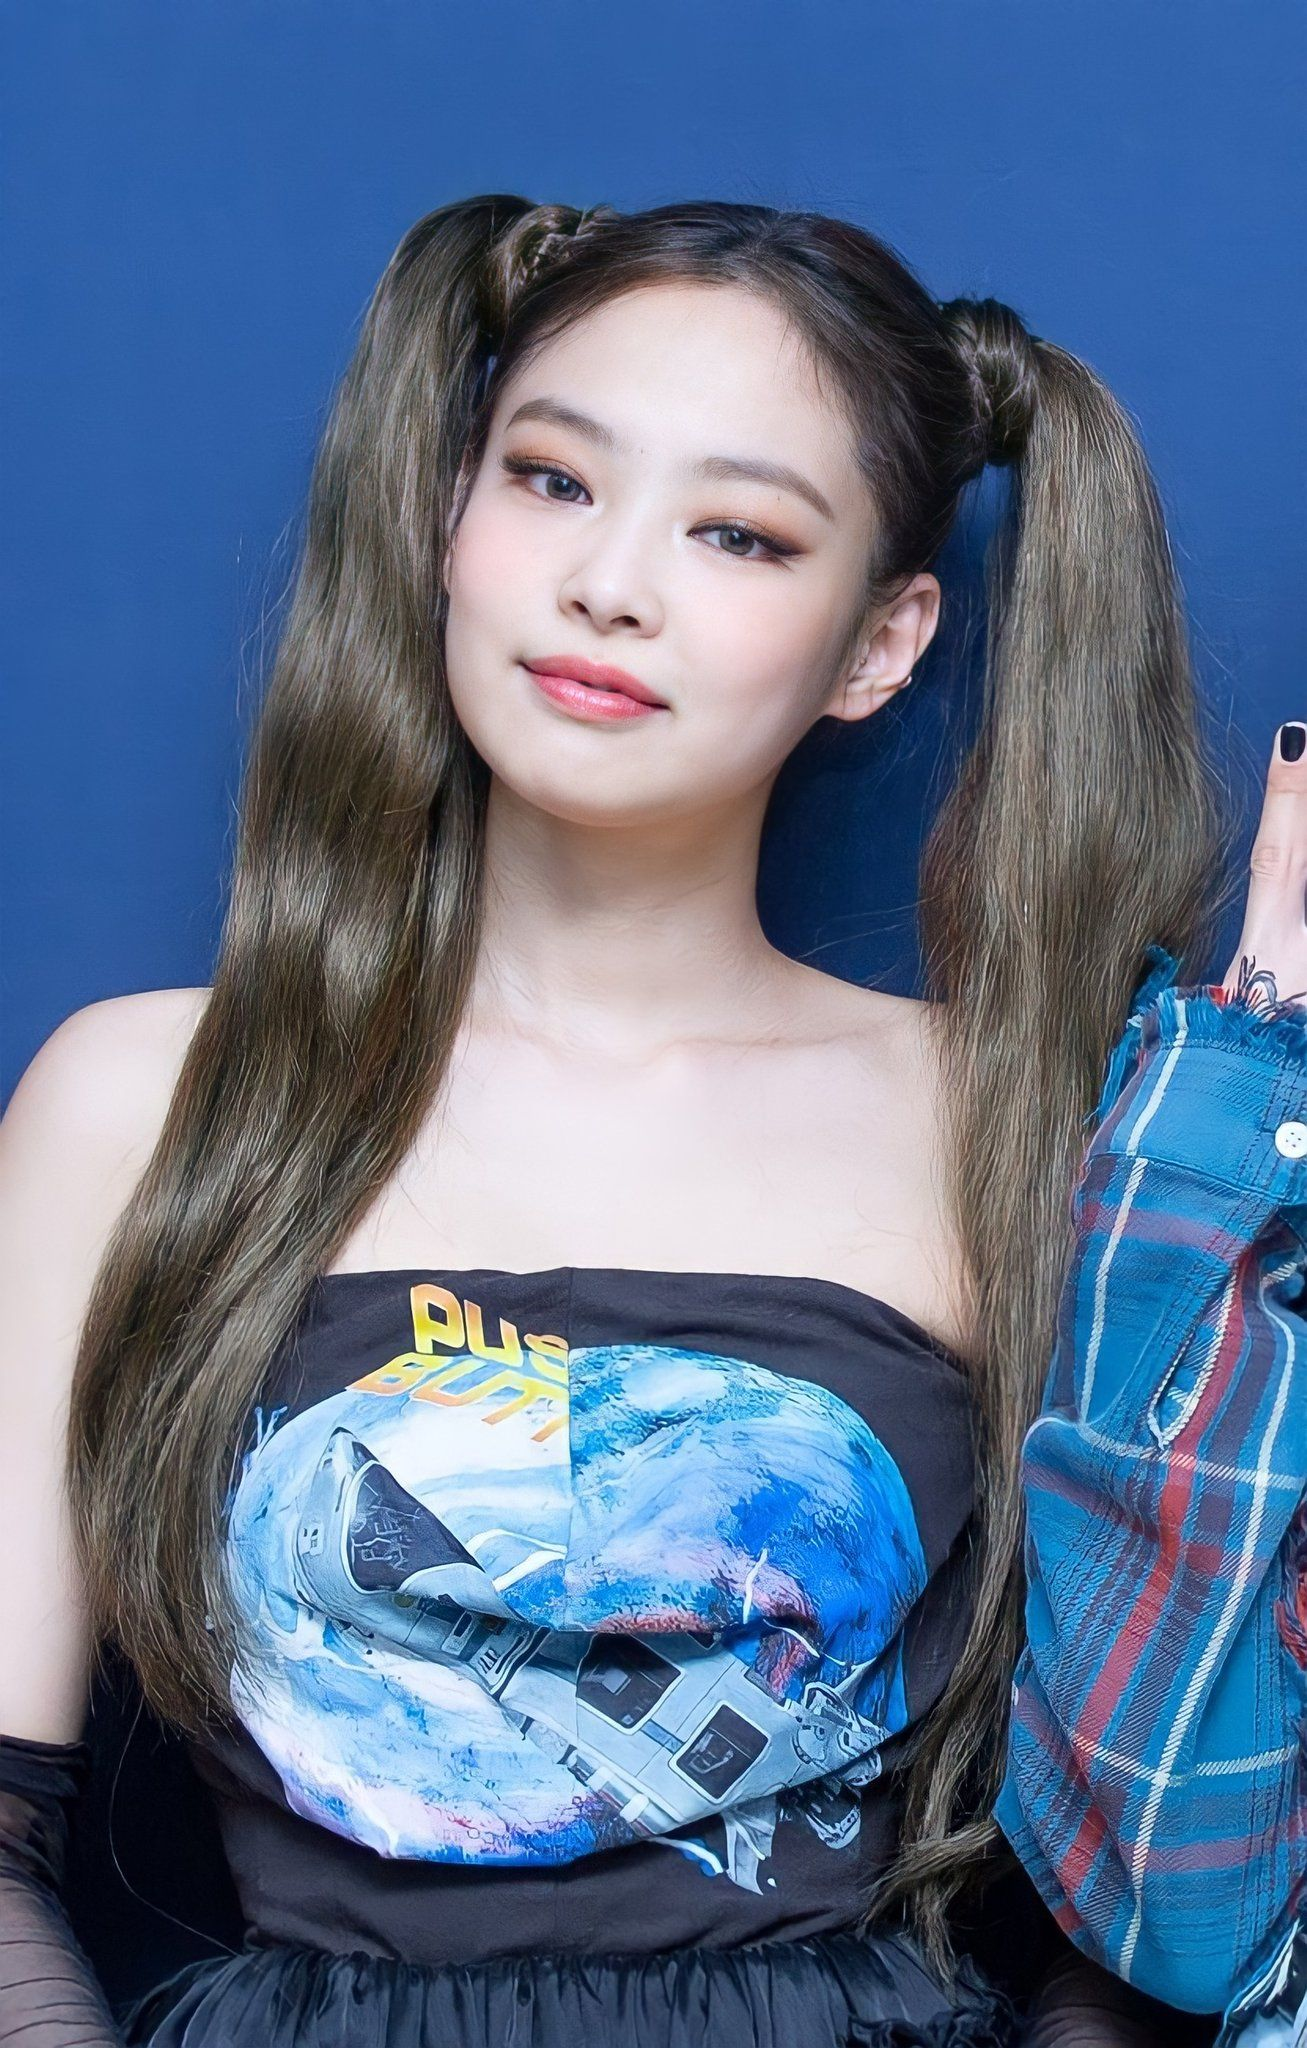 """jennie pics on Twitter: """"her beauty, make up, outfit. YUP i love everything about her"""